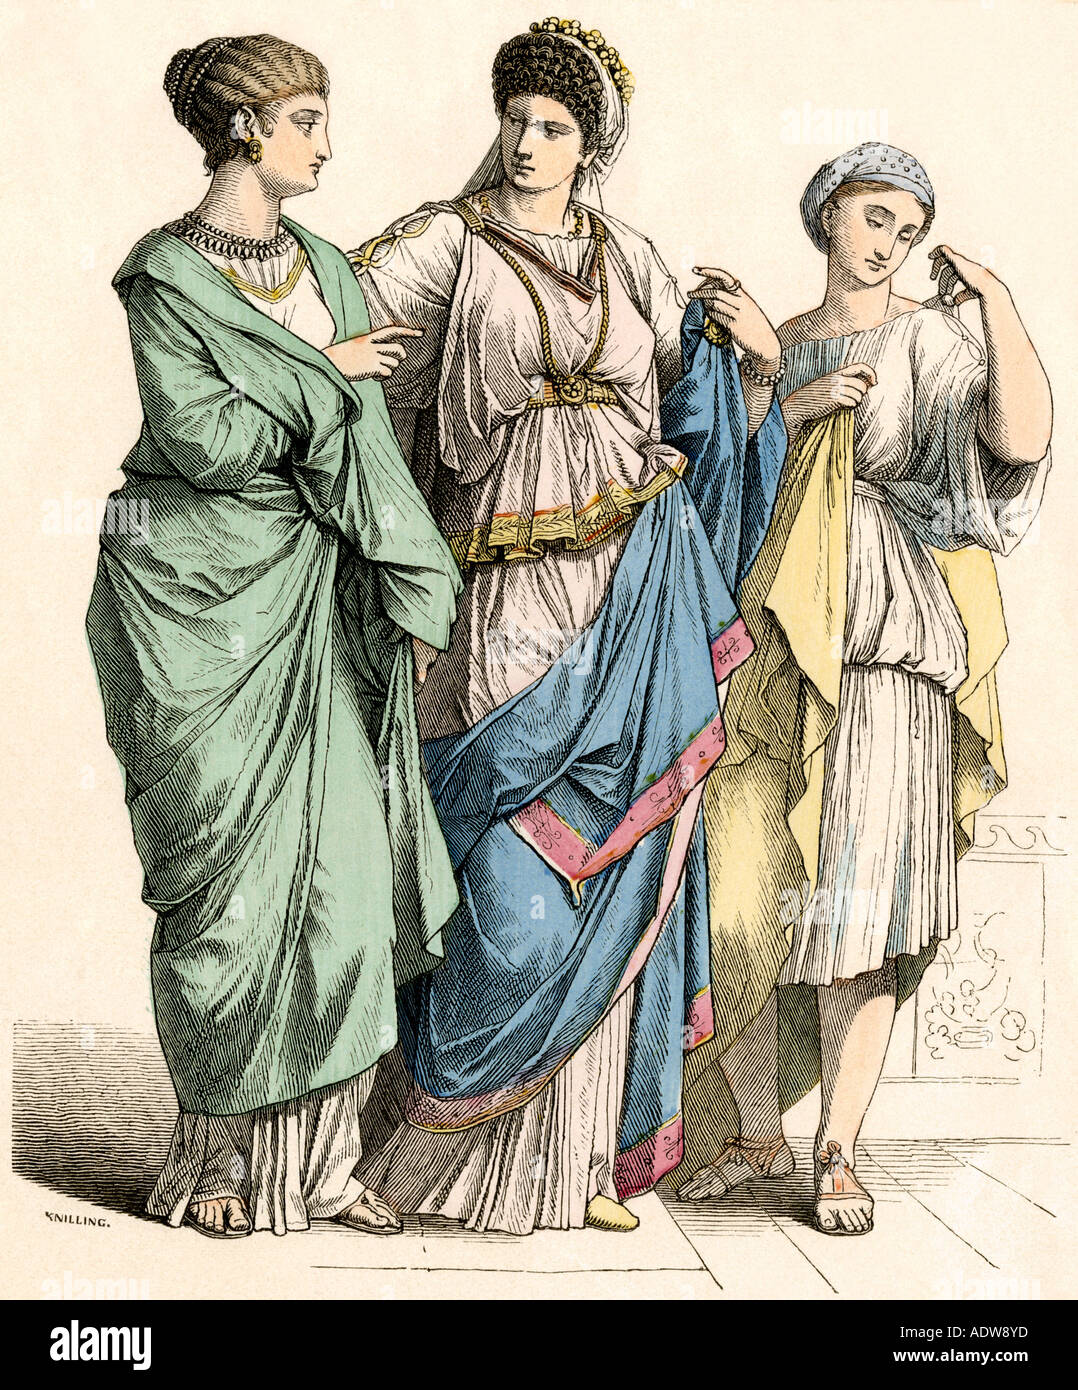 La S And Their Slave Girl In Ancient Rome Stock Photo